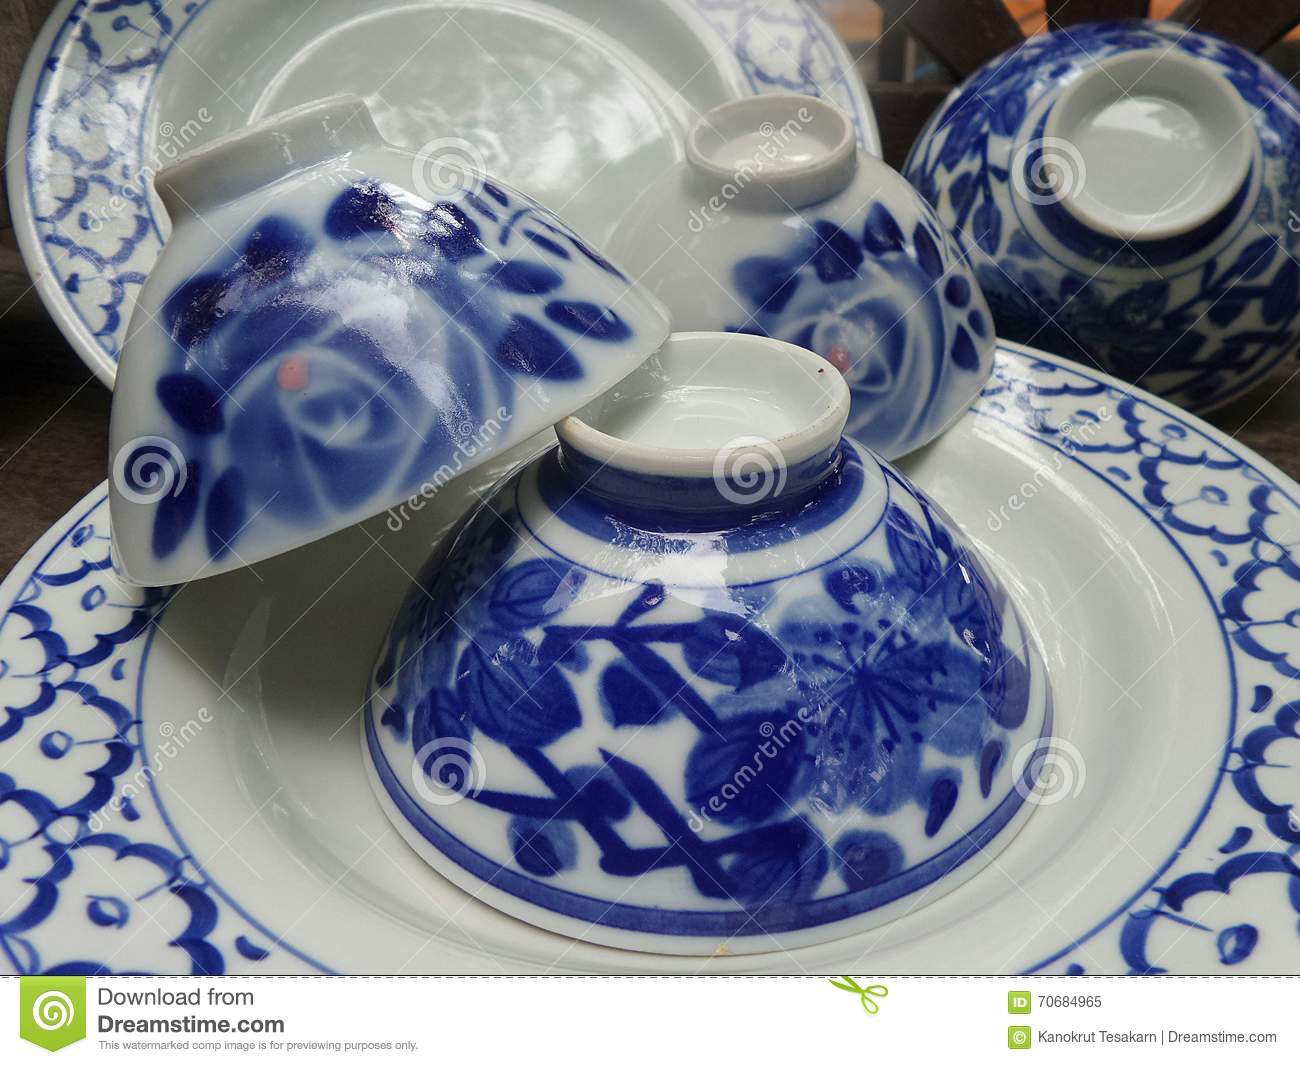 Shiny blue and white fine China bowl and plate tableware